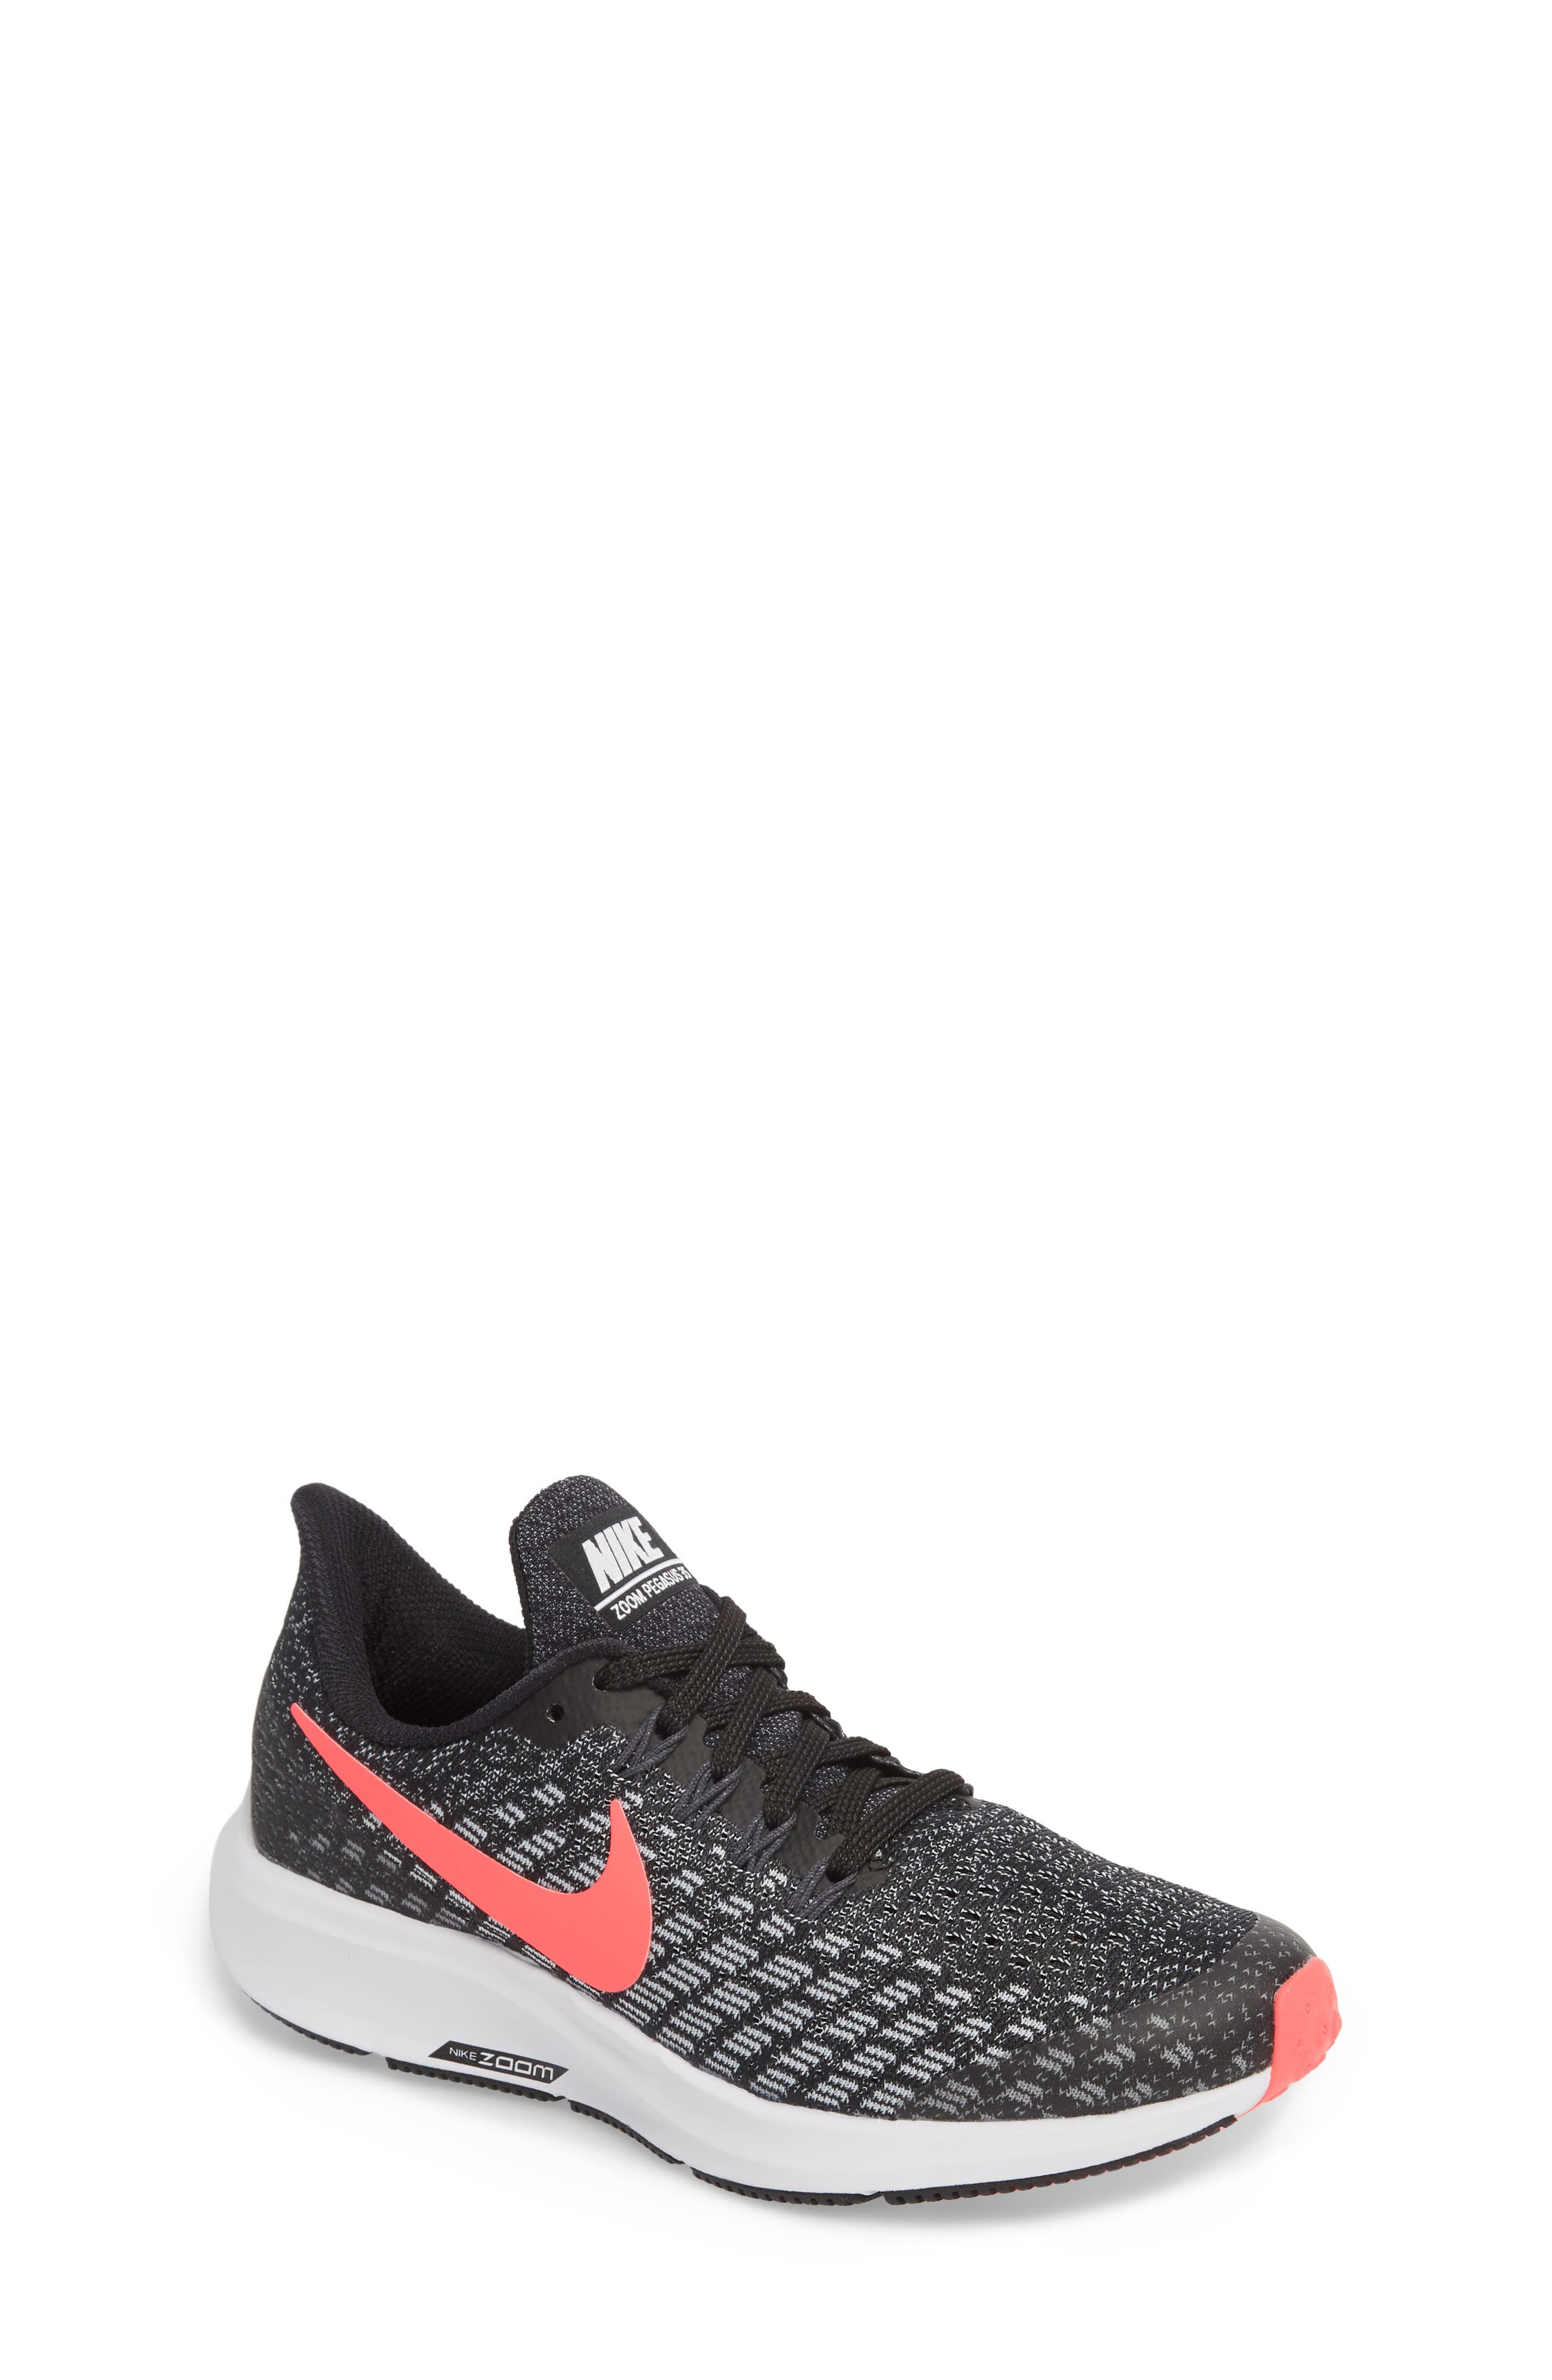 Air Zoom Pegasus 35 Sneaker,                             Main thumbnail 1, color,                             RACER PINK/ WHITE/ ANTHRACITE